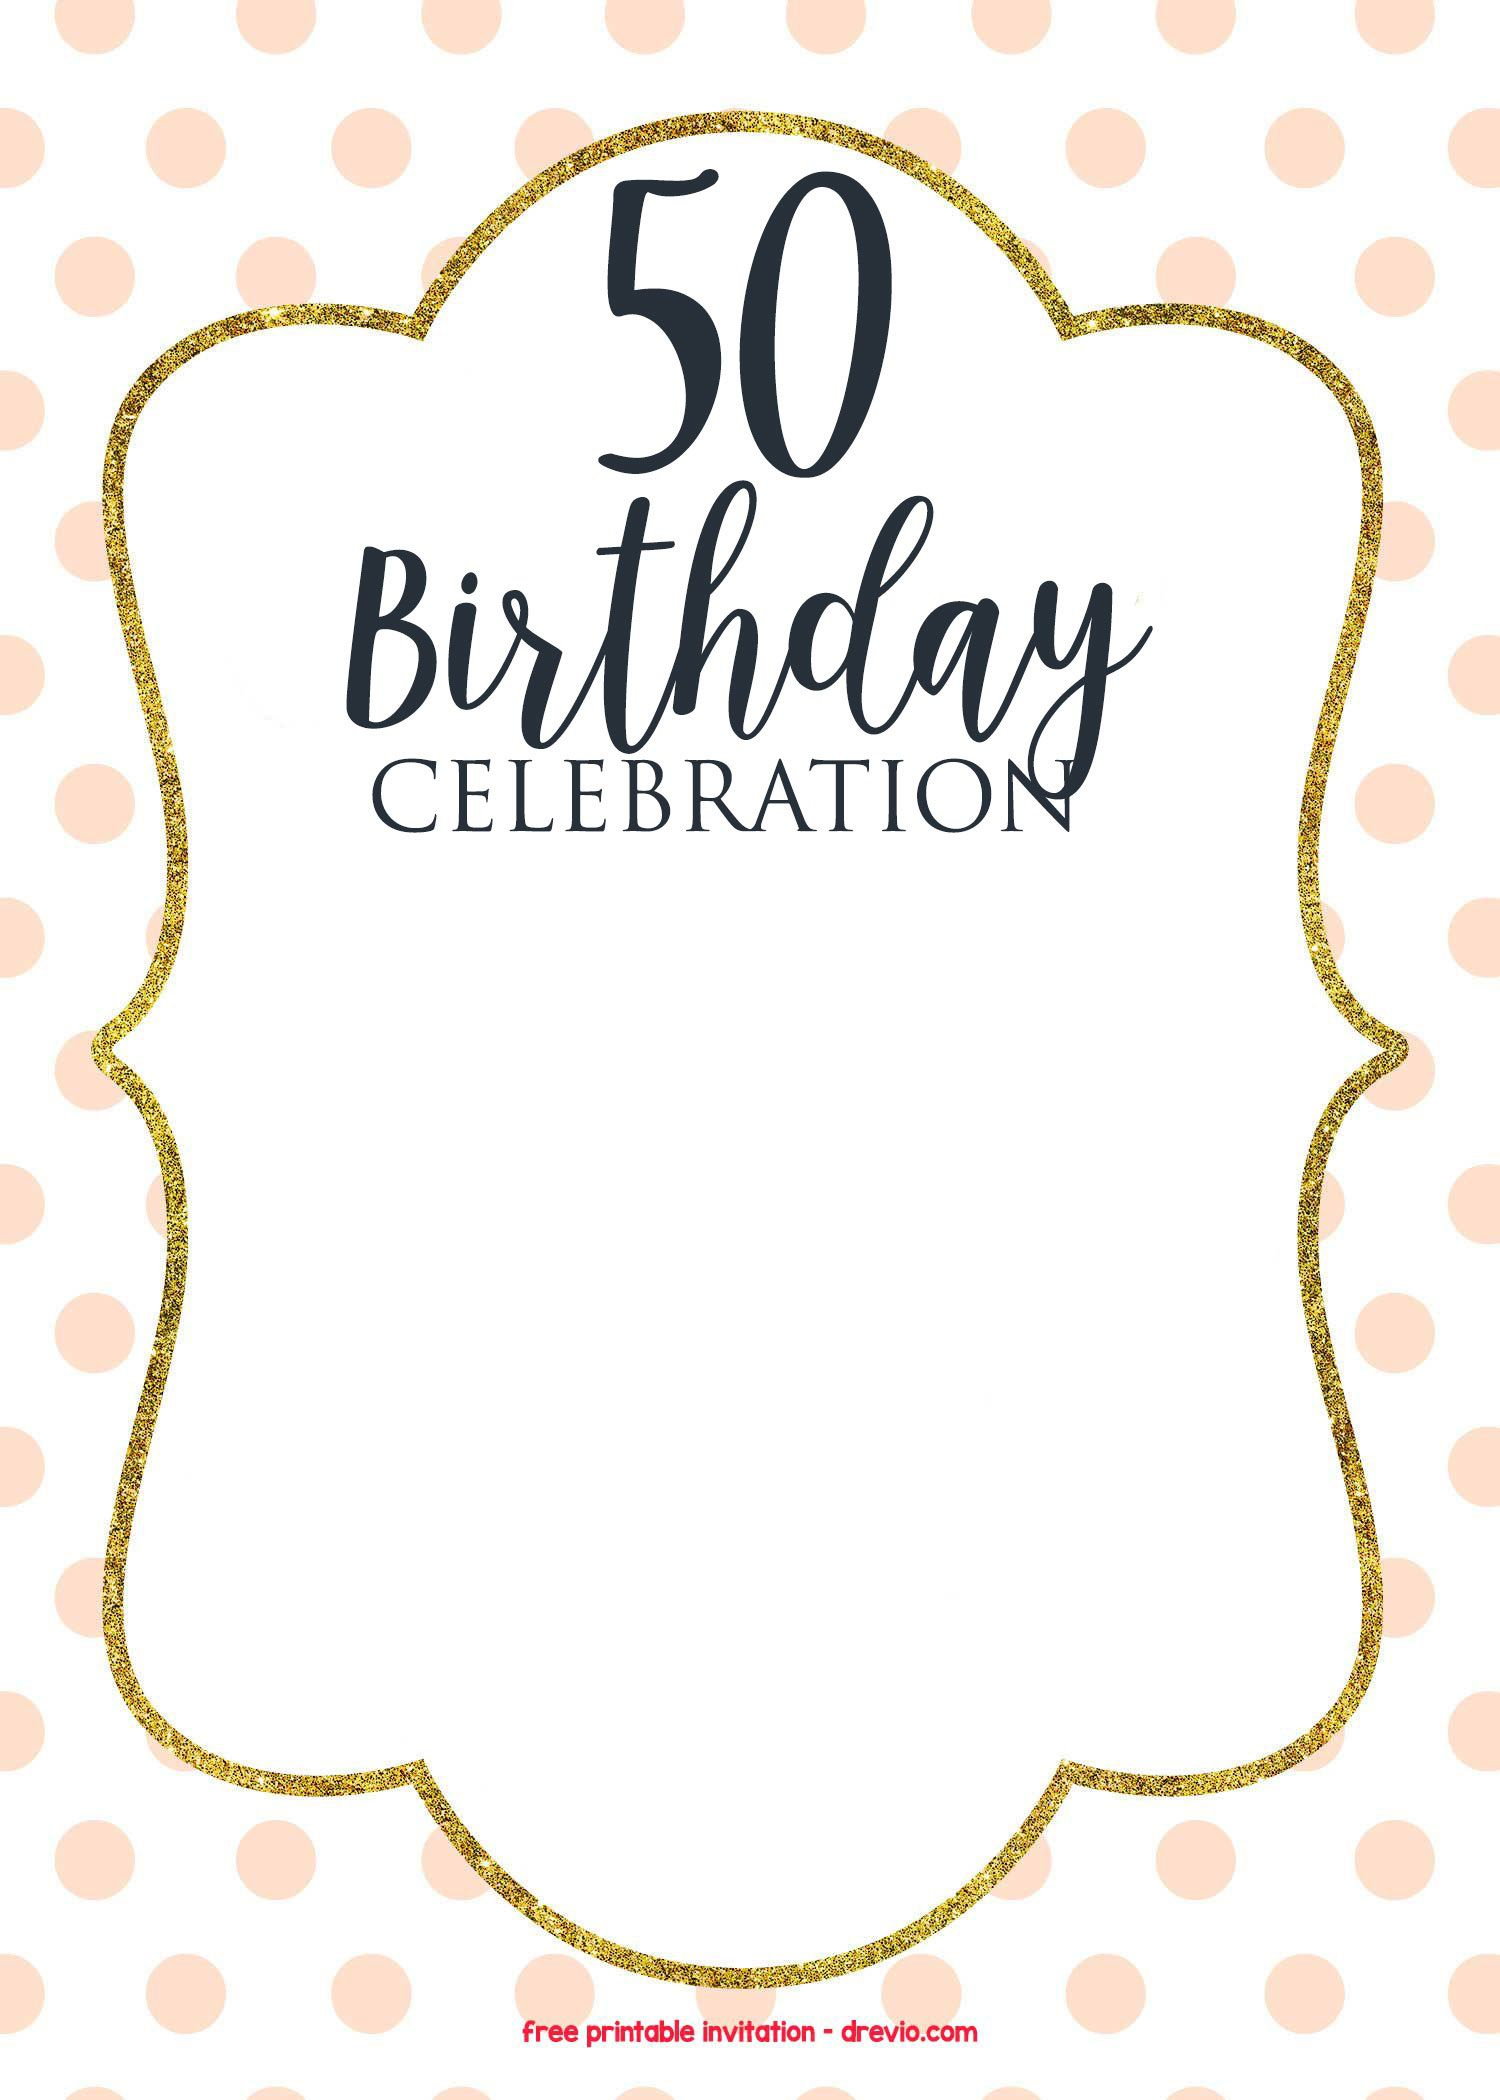 009 Imposing 50th Birthday Invitation Template Picture  Vector Free For HimFull